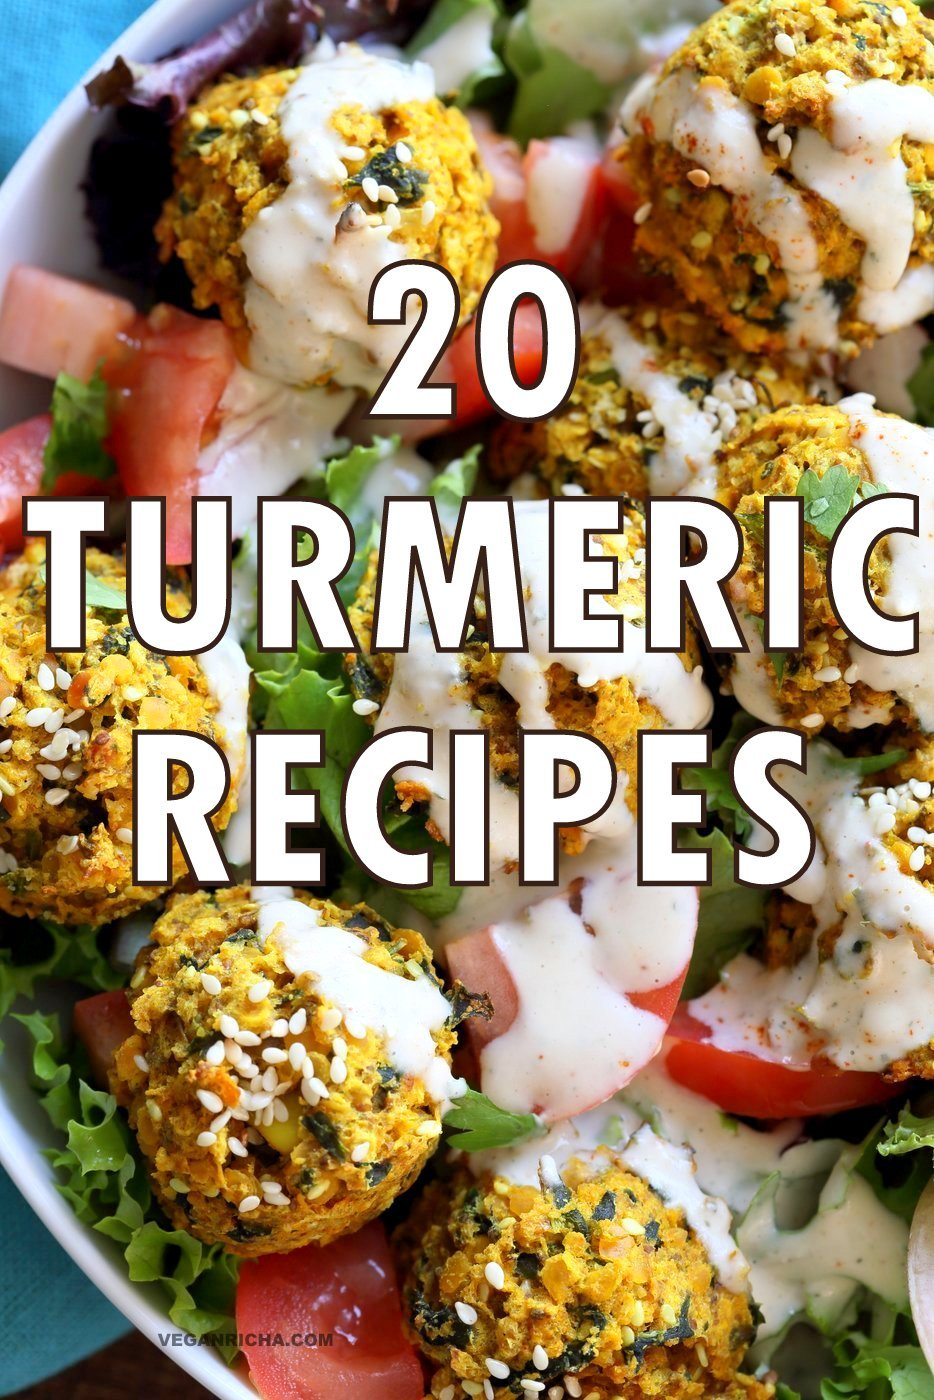 20 Turmeric Recipes Vegan Glutenfree options